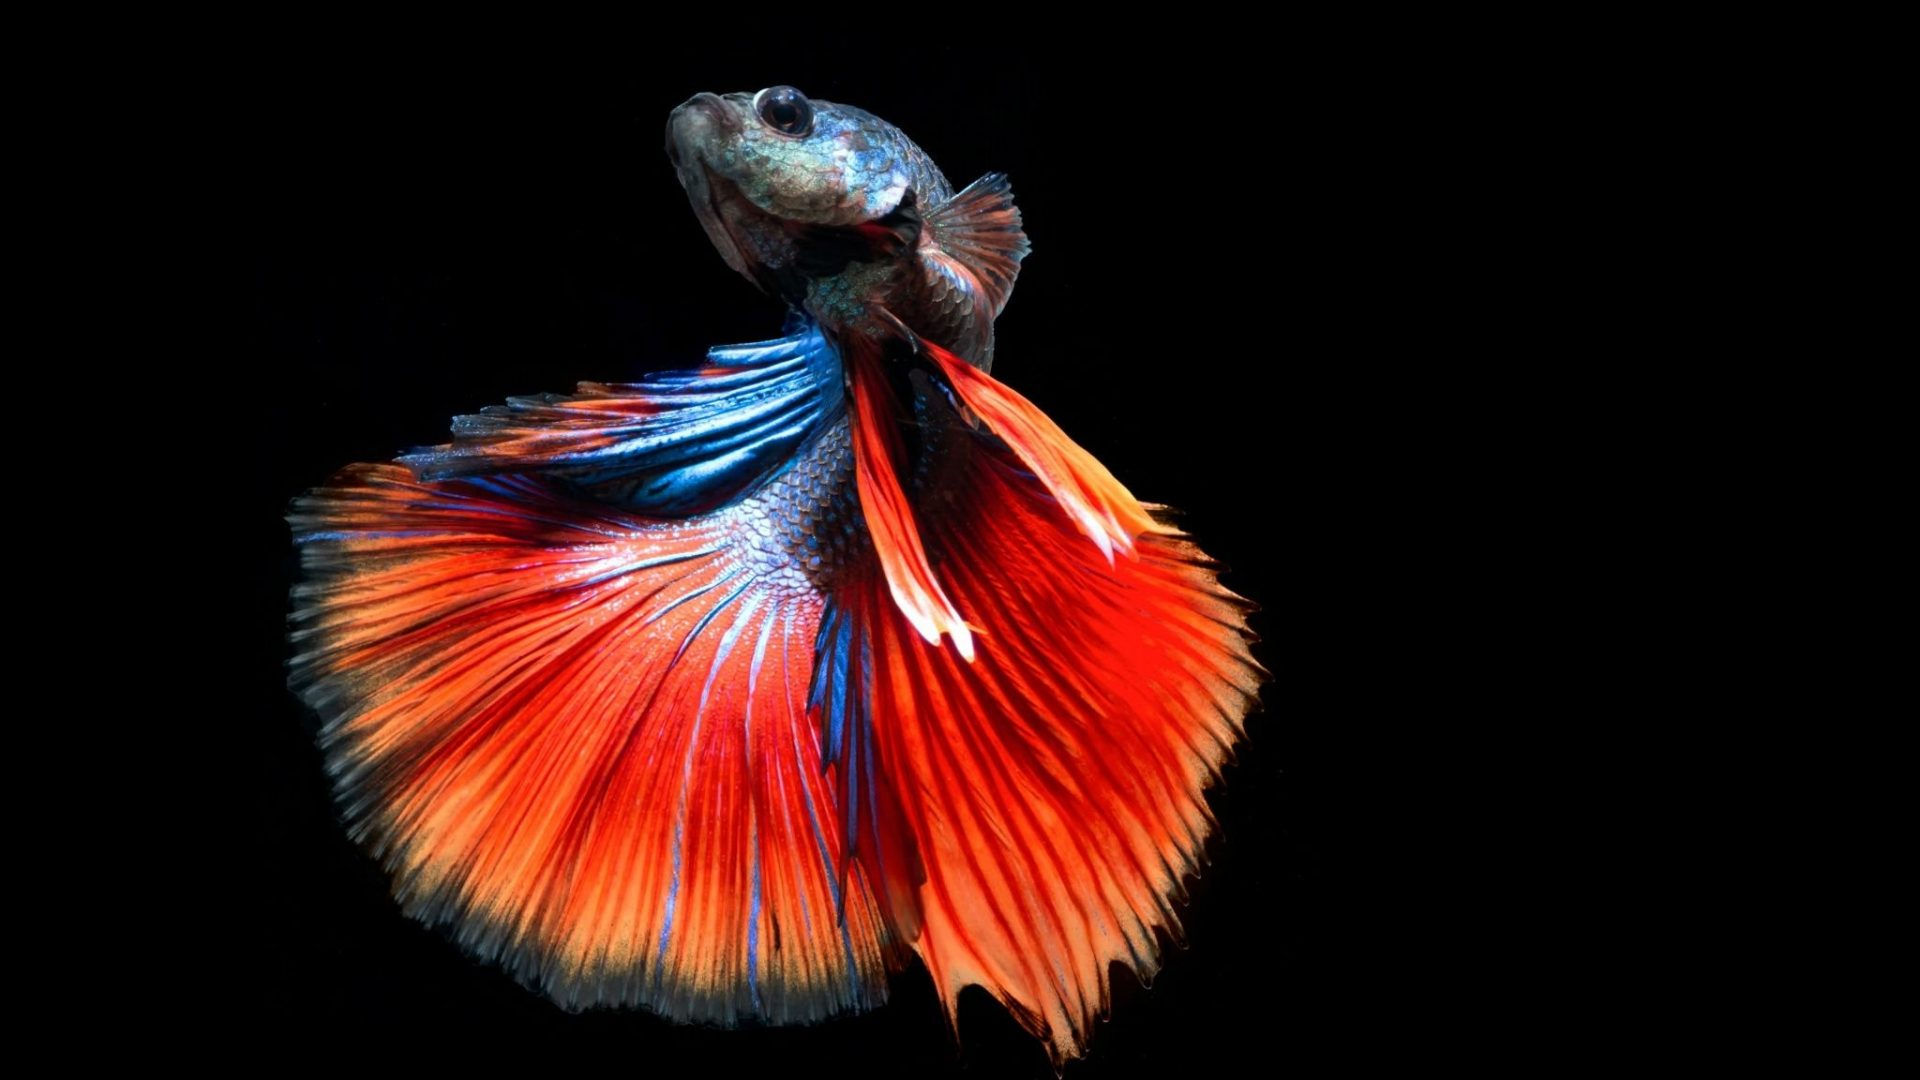 Siamese Betta Underwater Fighting Fish Tropical Psychedelic Dolphin Wallpaper